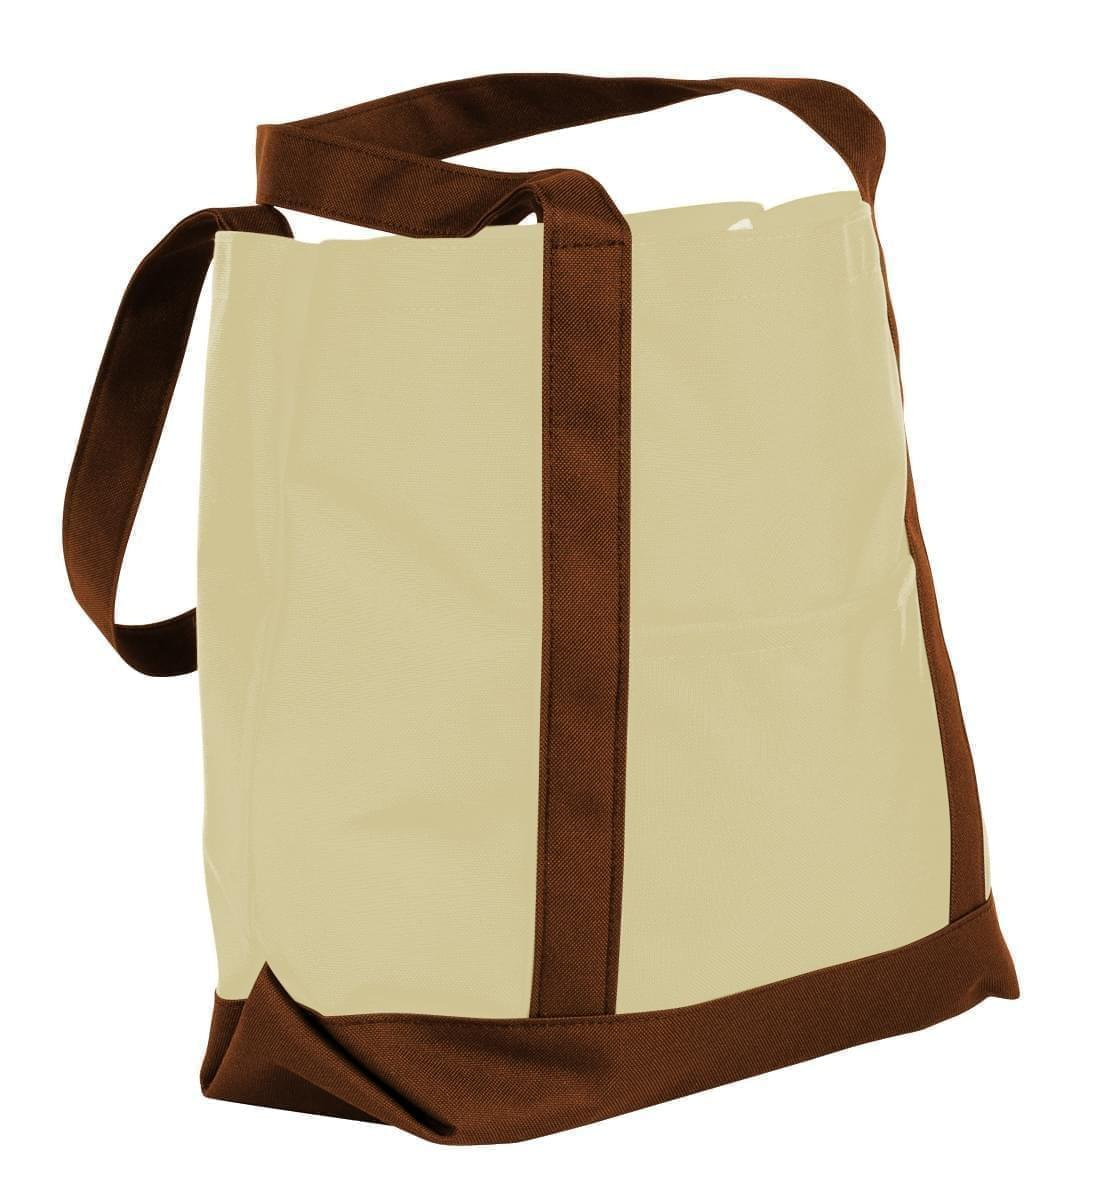 USA Made Canvas Fashion Tote Bags, Natural-Brown, XAACL1UAKD